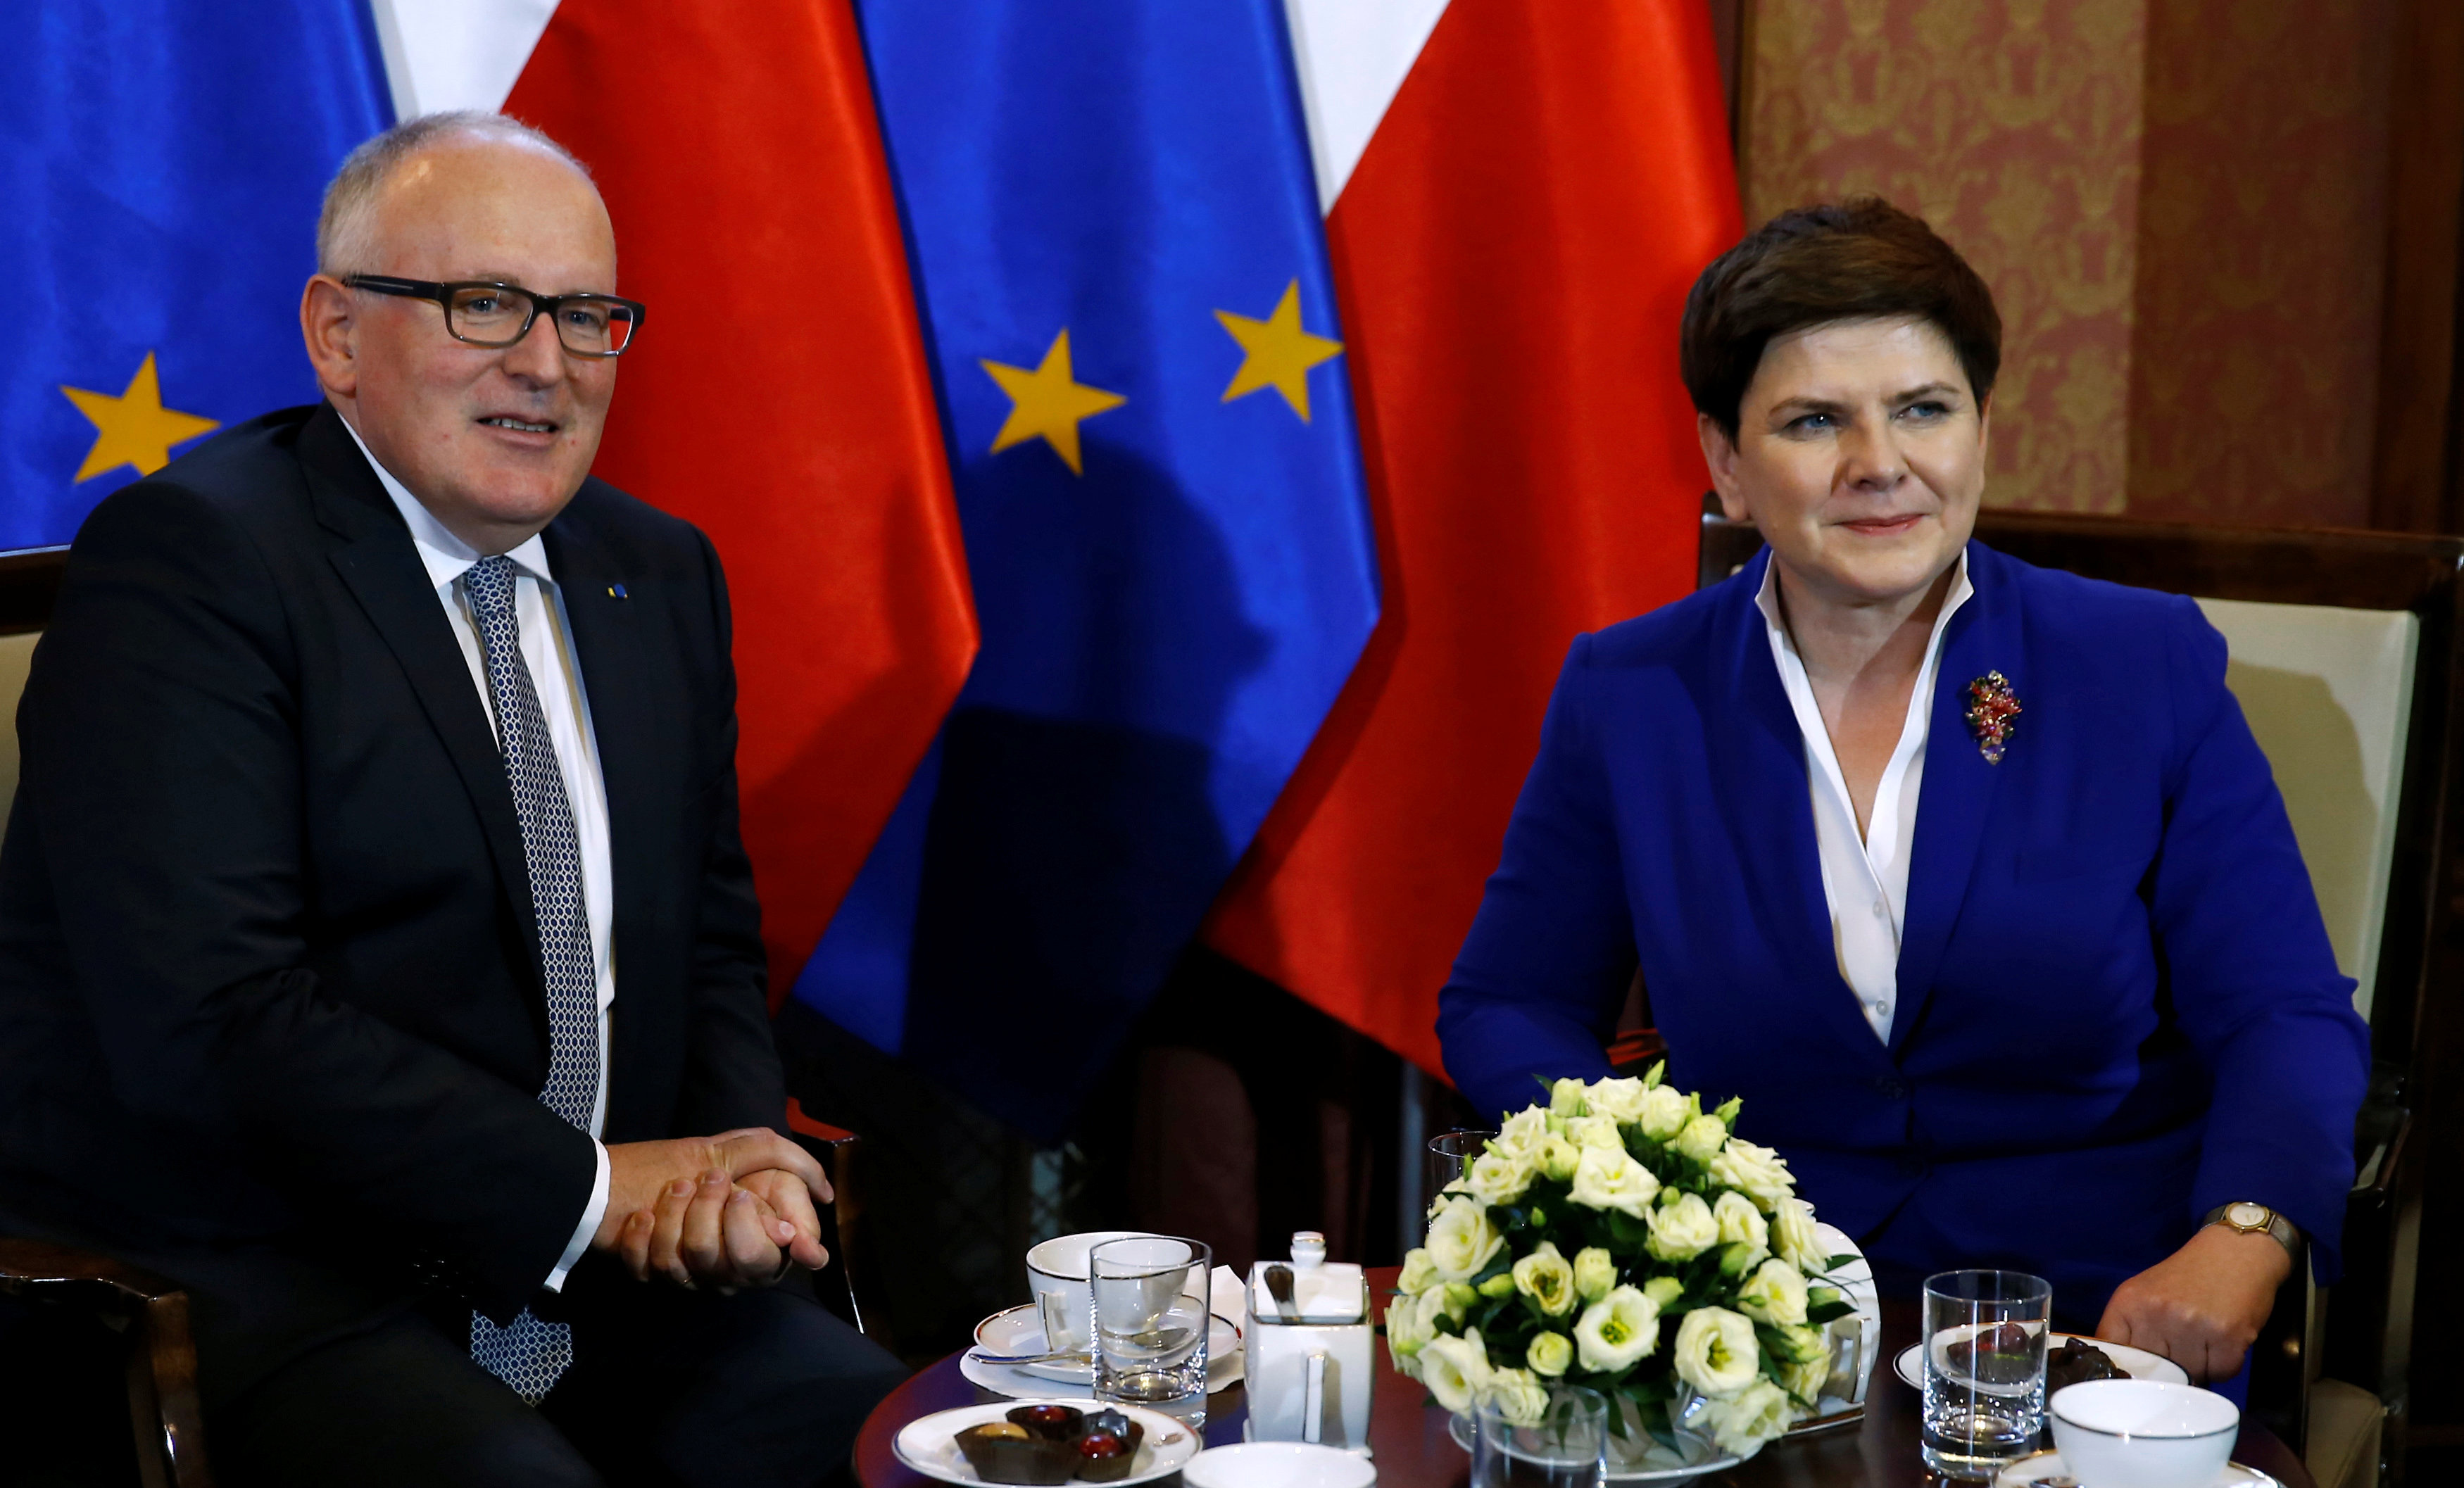 Poland's Europe problem has deep roots